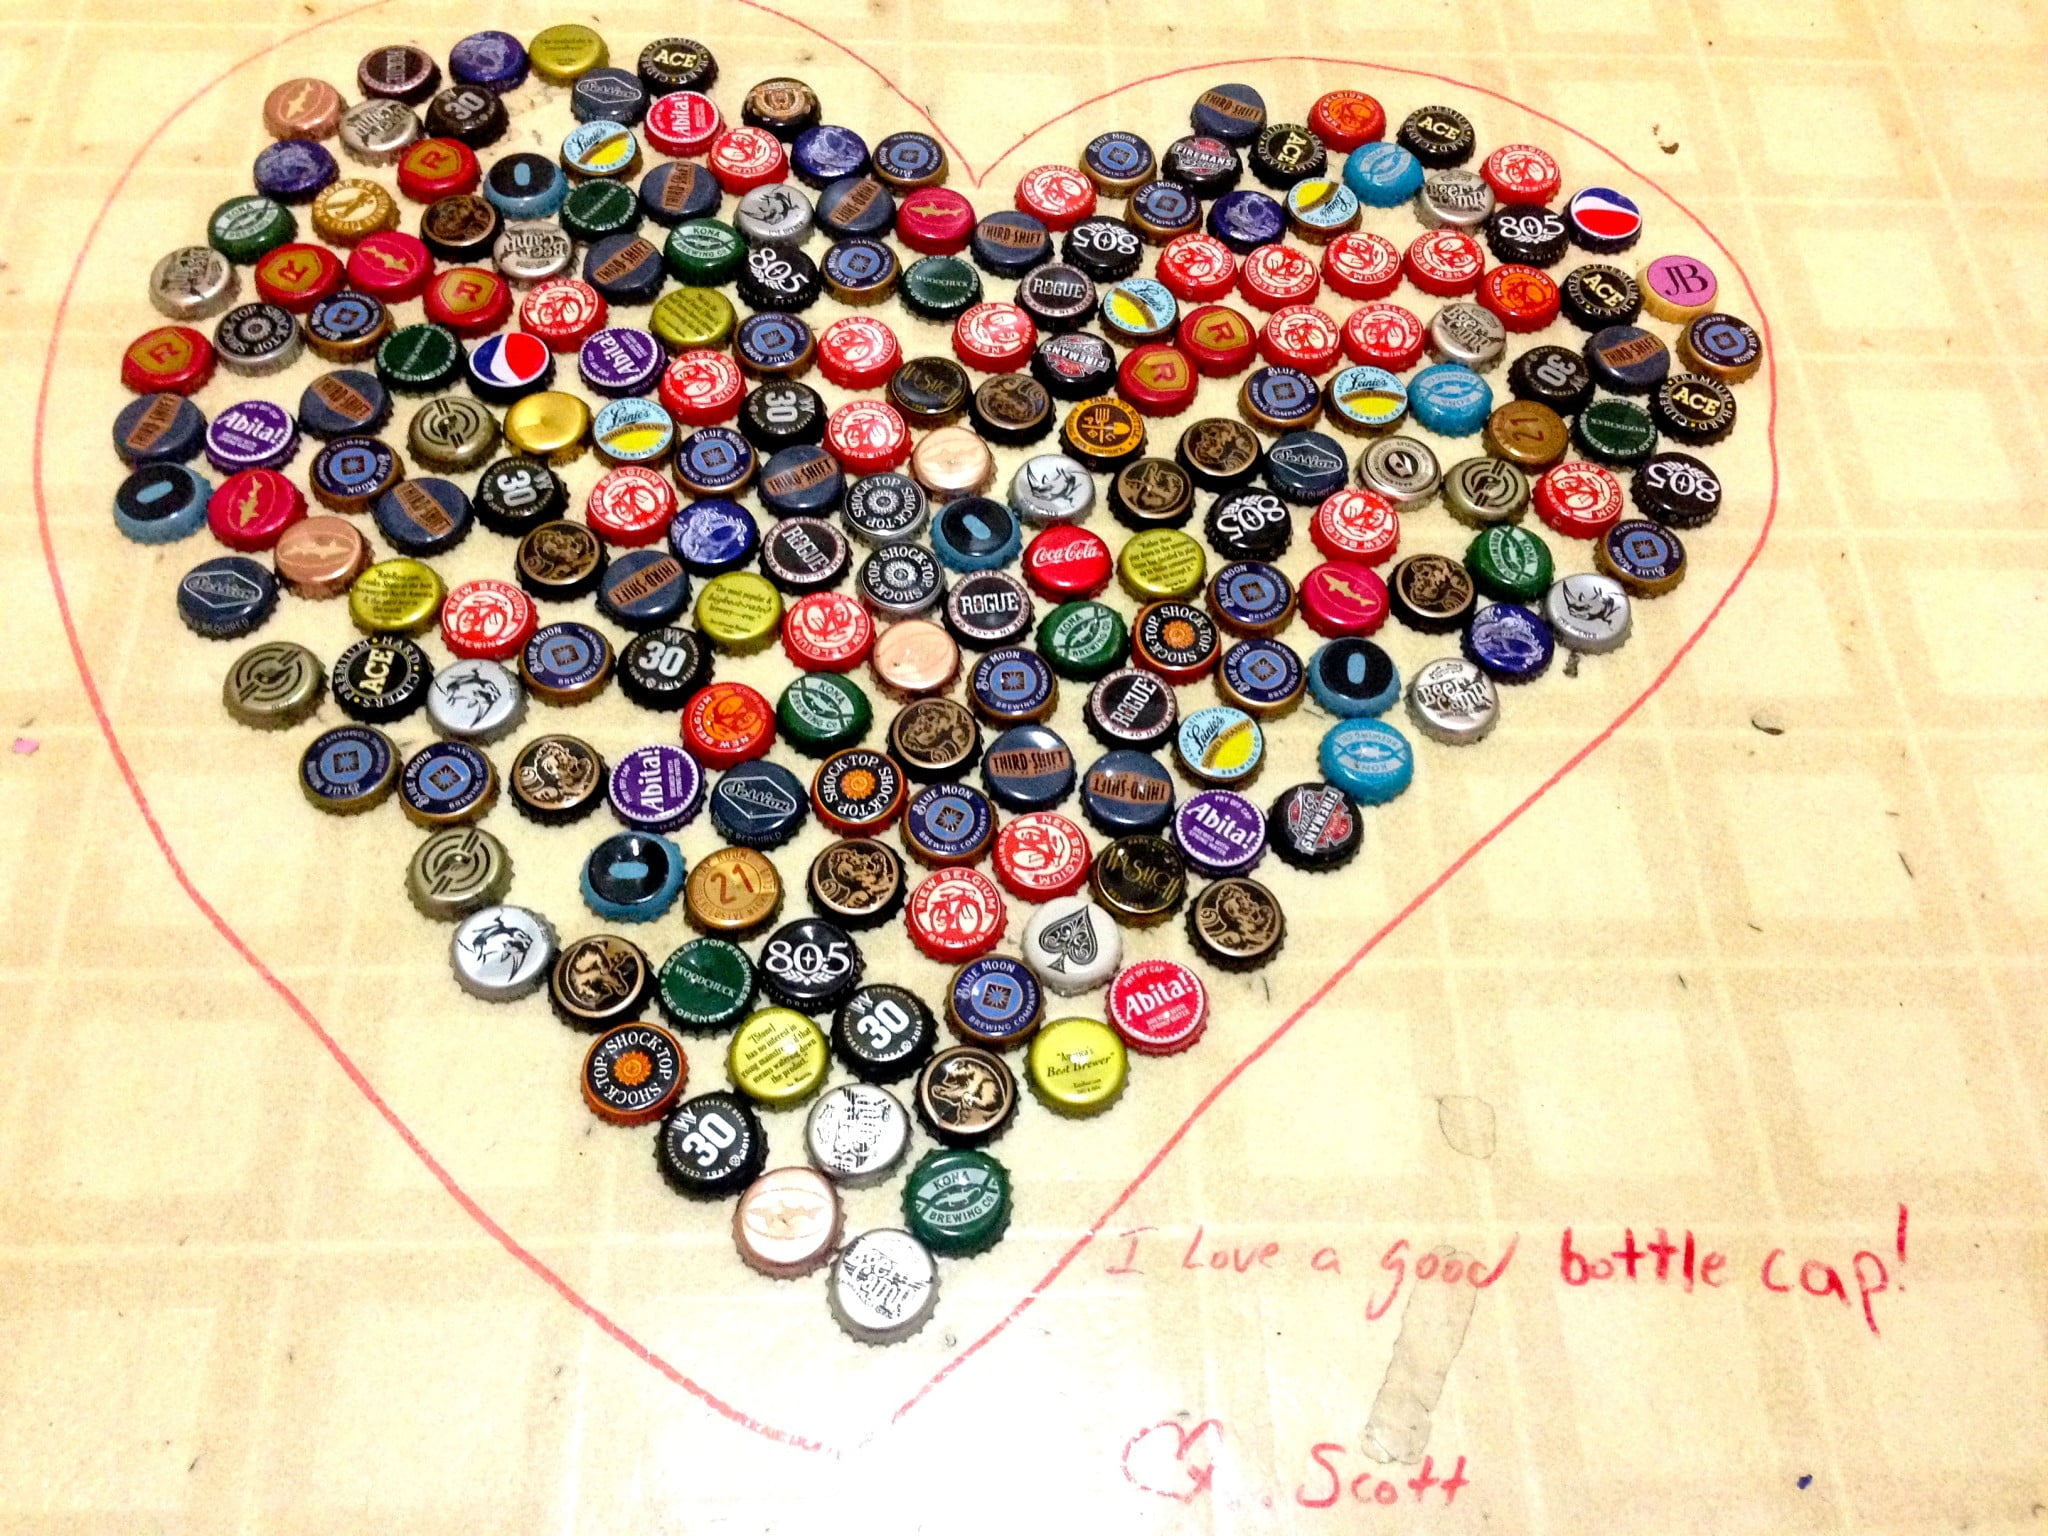 bottle cap heart show love